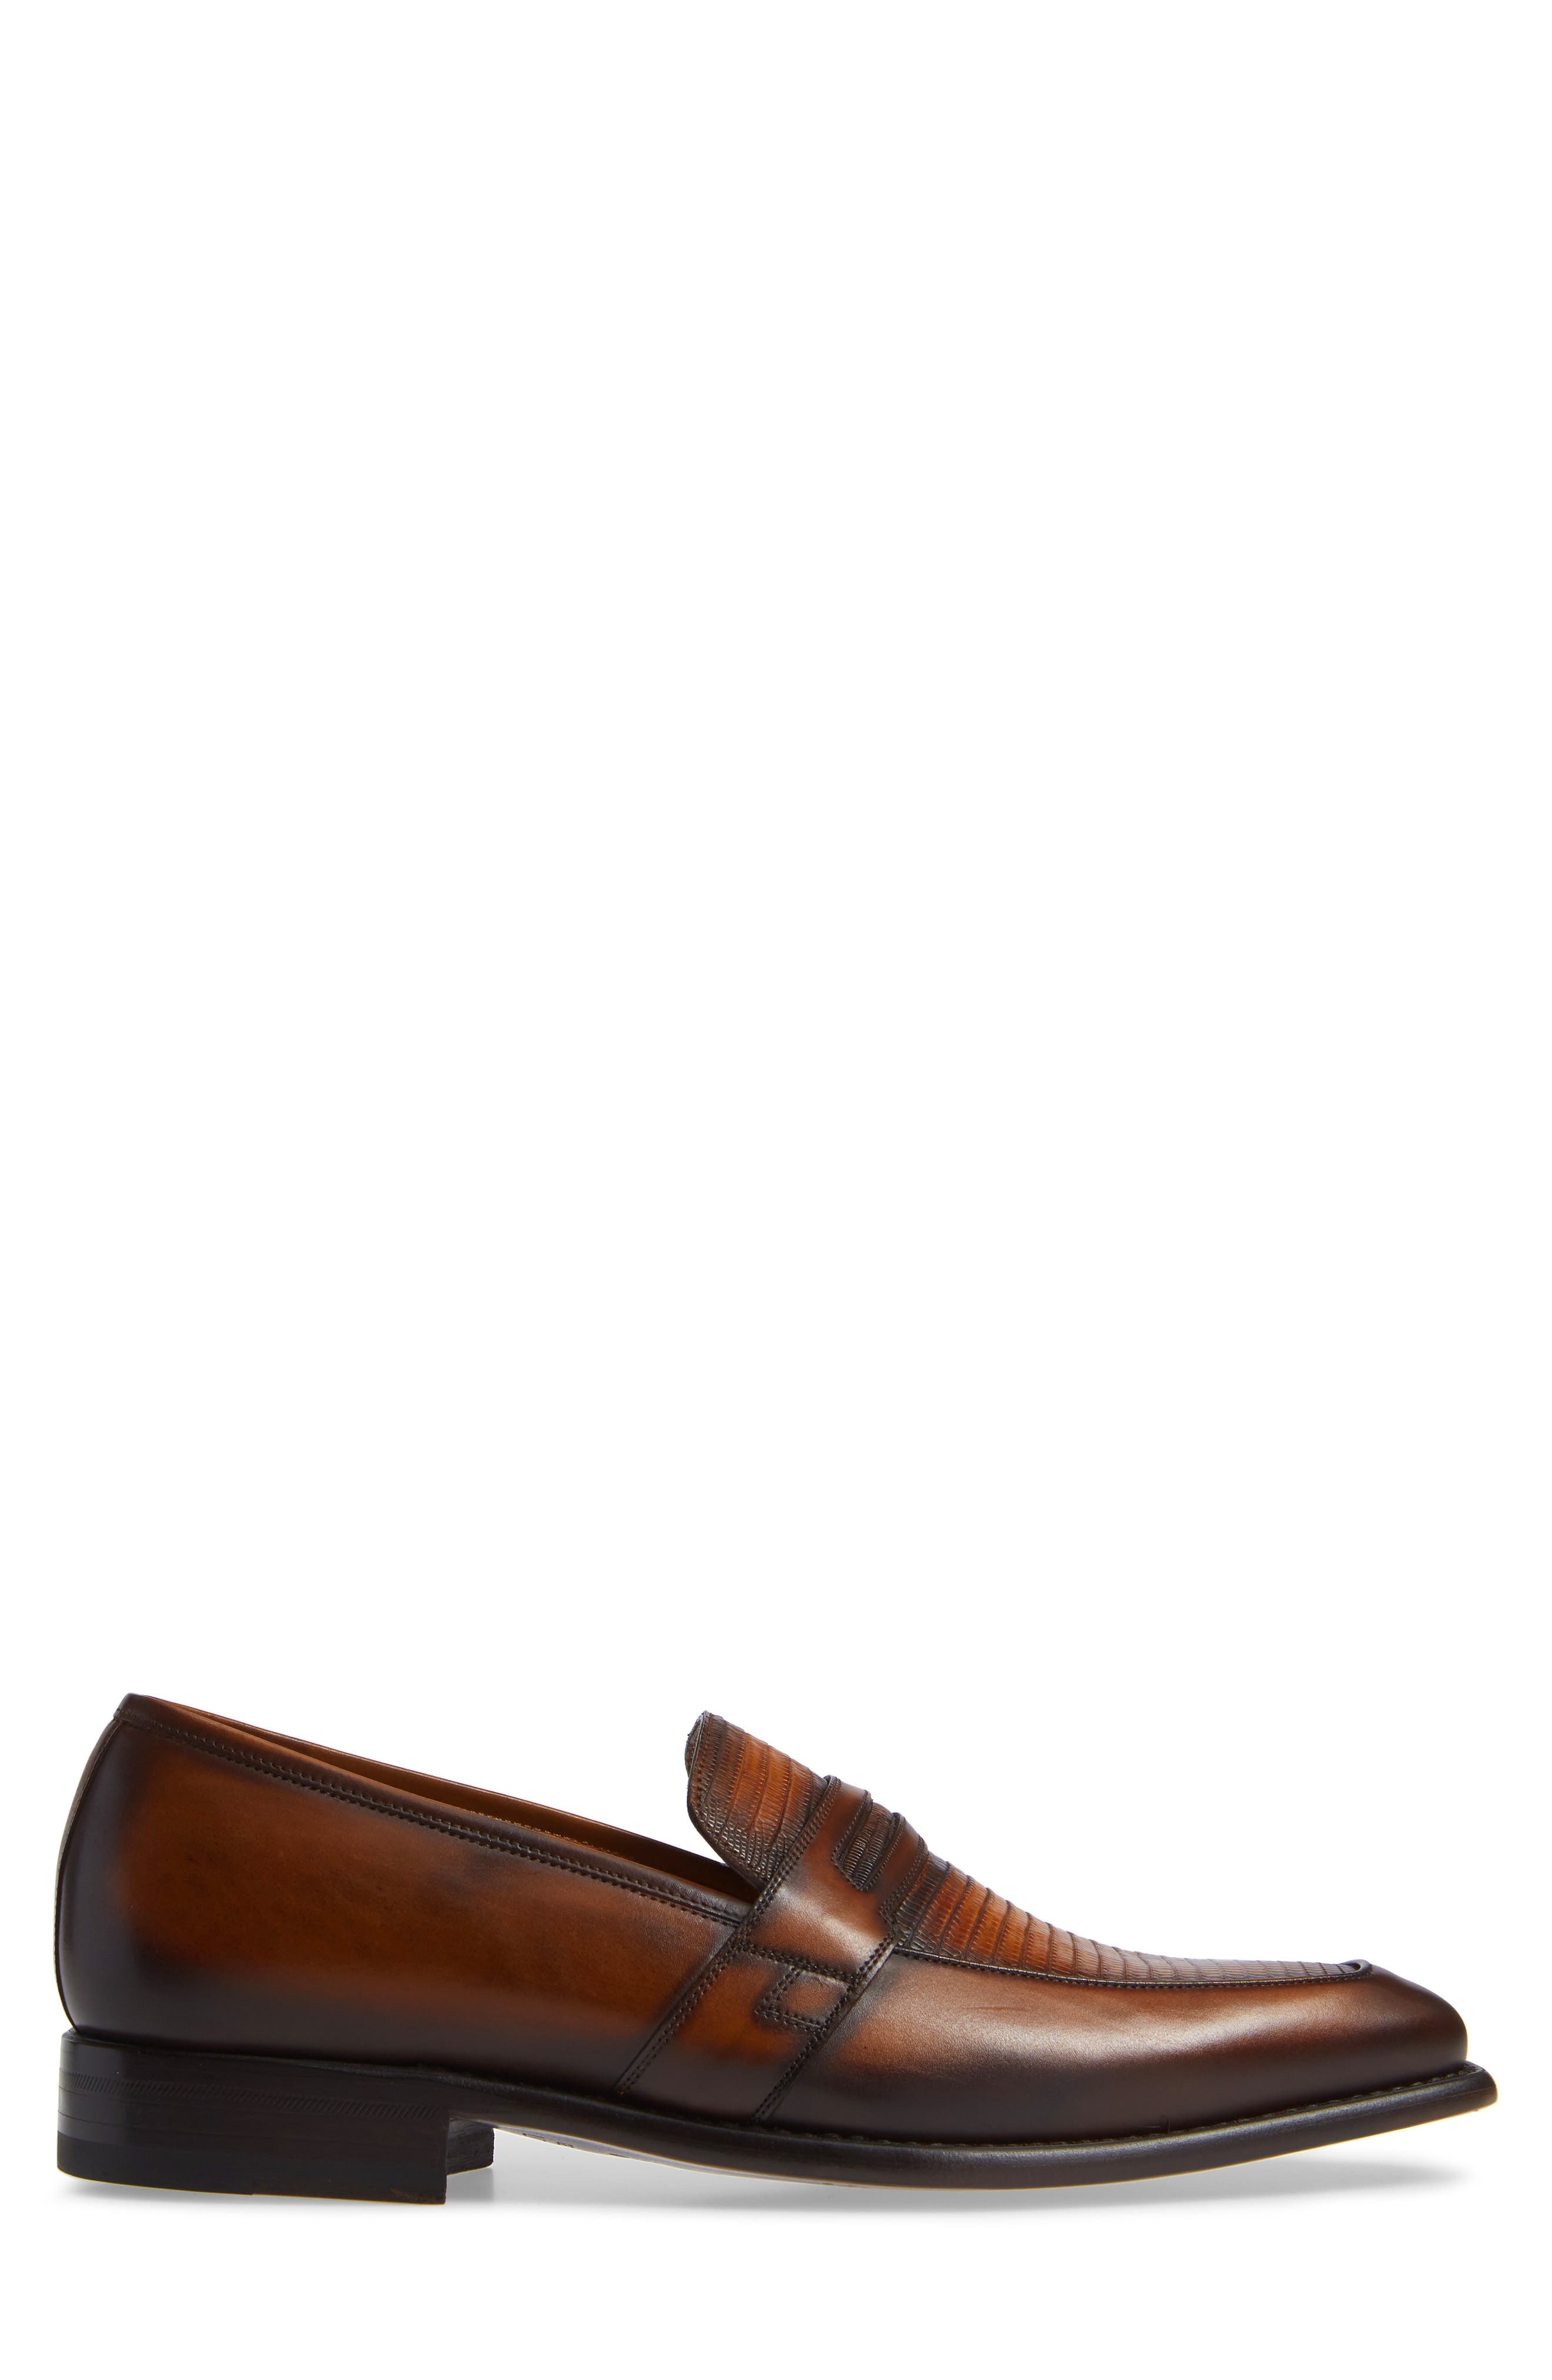 Hess Penny Loafer,                             Alternate thumbnail 3, color,                             HONEY LEATHER